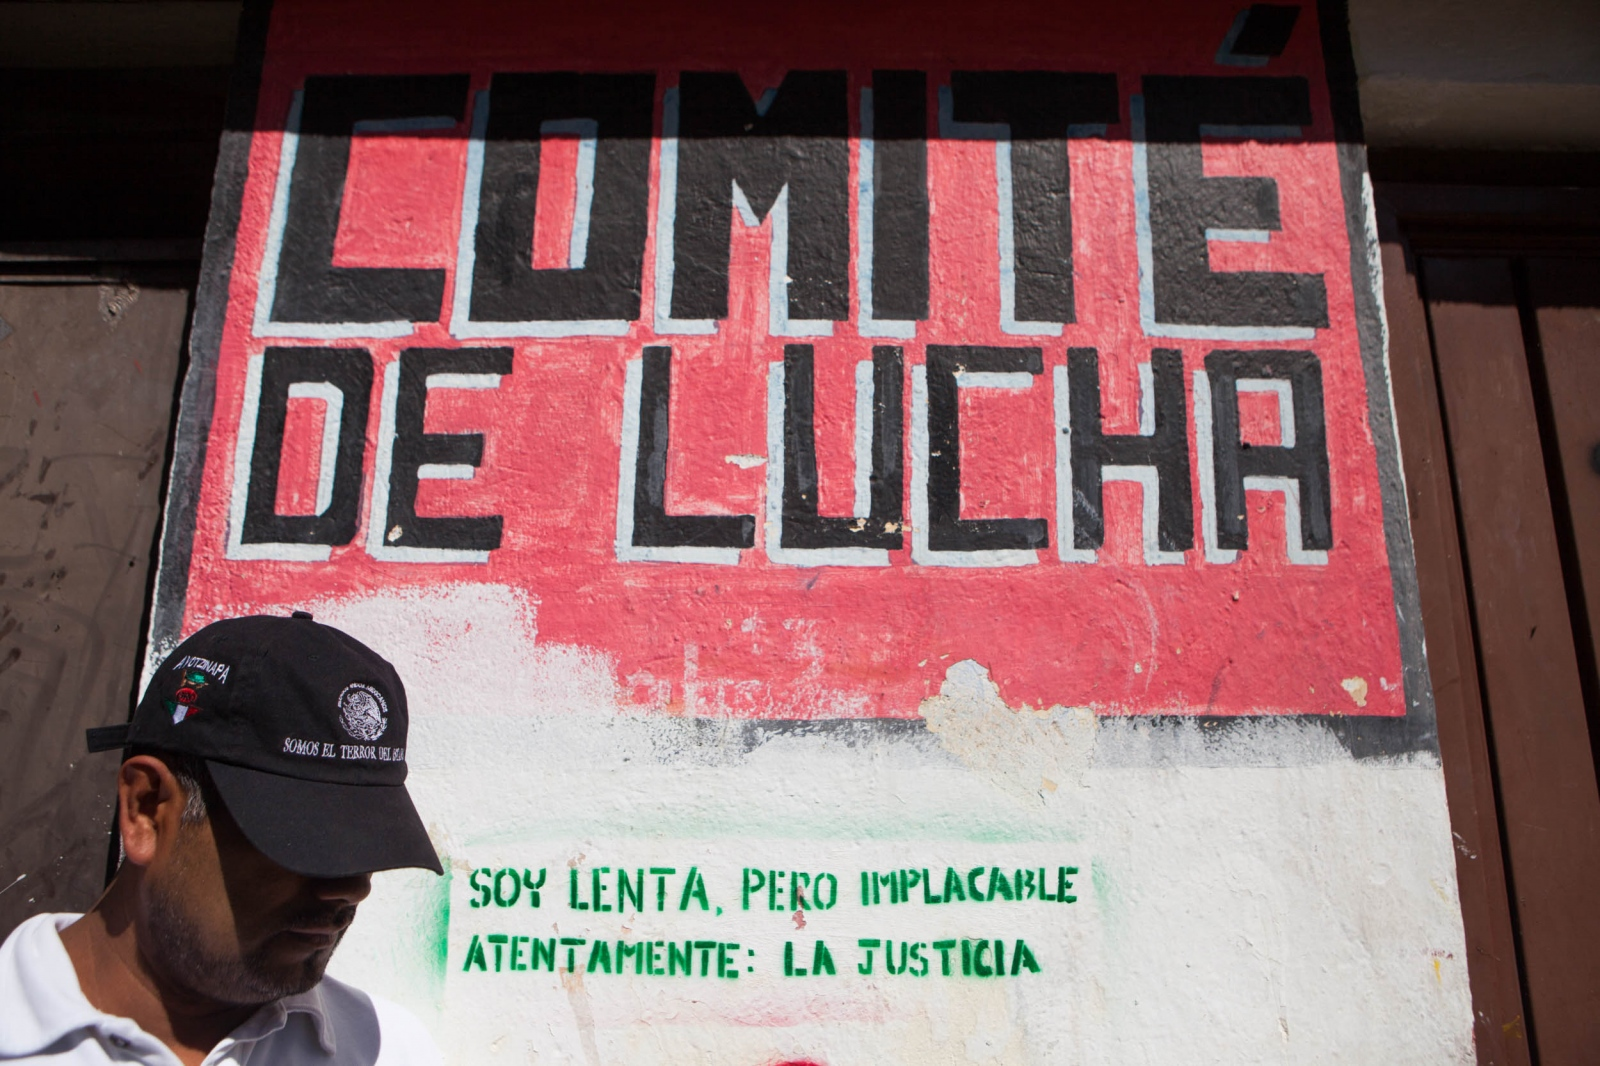 """Fighting Comitee"", area of the school where the students gather to learn about politics. A man who was helping out with the searches of the students stands by the bulding wearing a hat that reads ""We are the State worst enemies"" and text on the wall reads "" Im slow but relentless, att. the justice"". // Comite de Lucha es un espacio de la escuela en la que los alumnos se reunien para aprender sobre politica. Señor que estaba ayudando con las busquedas de los alumnos trae puesta una gorra que se lee ""Ayotzinapa: El terror del Estado""."